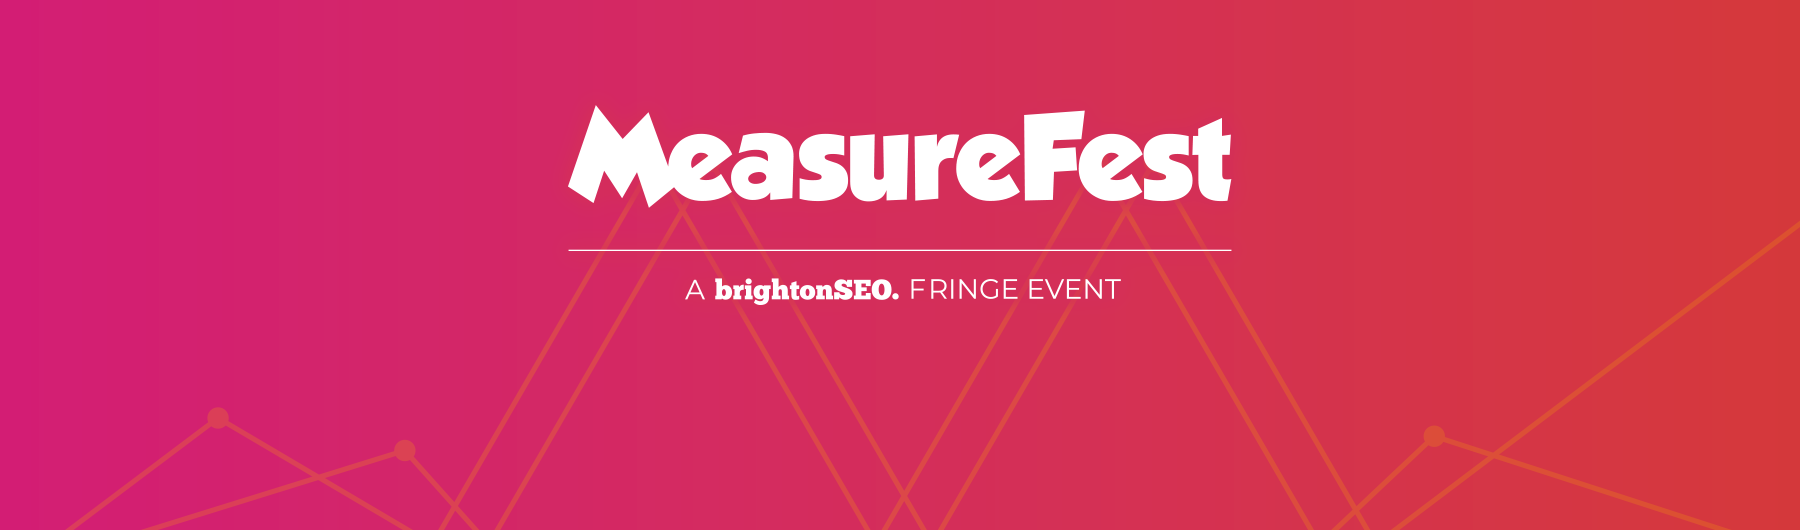 Measurefest September 2019